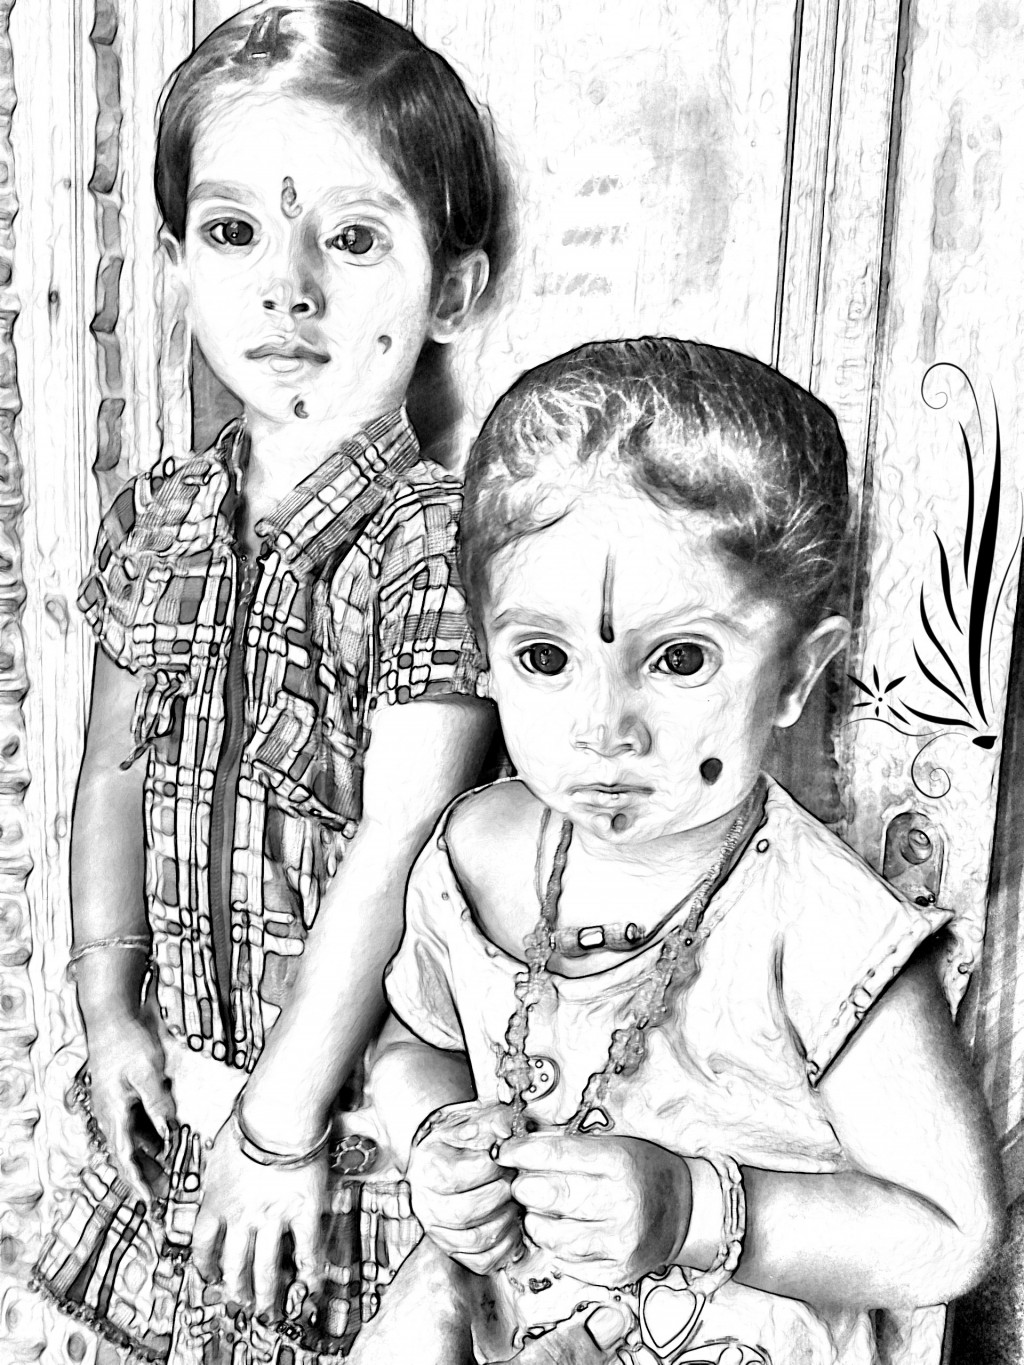 Photoshop work of two cuties